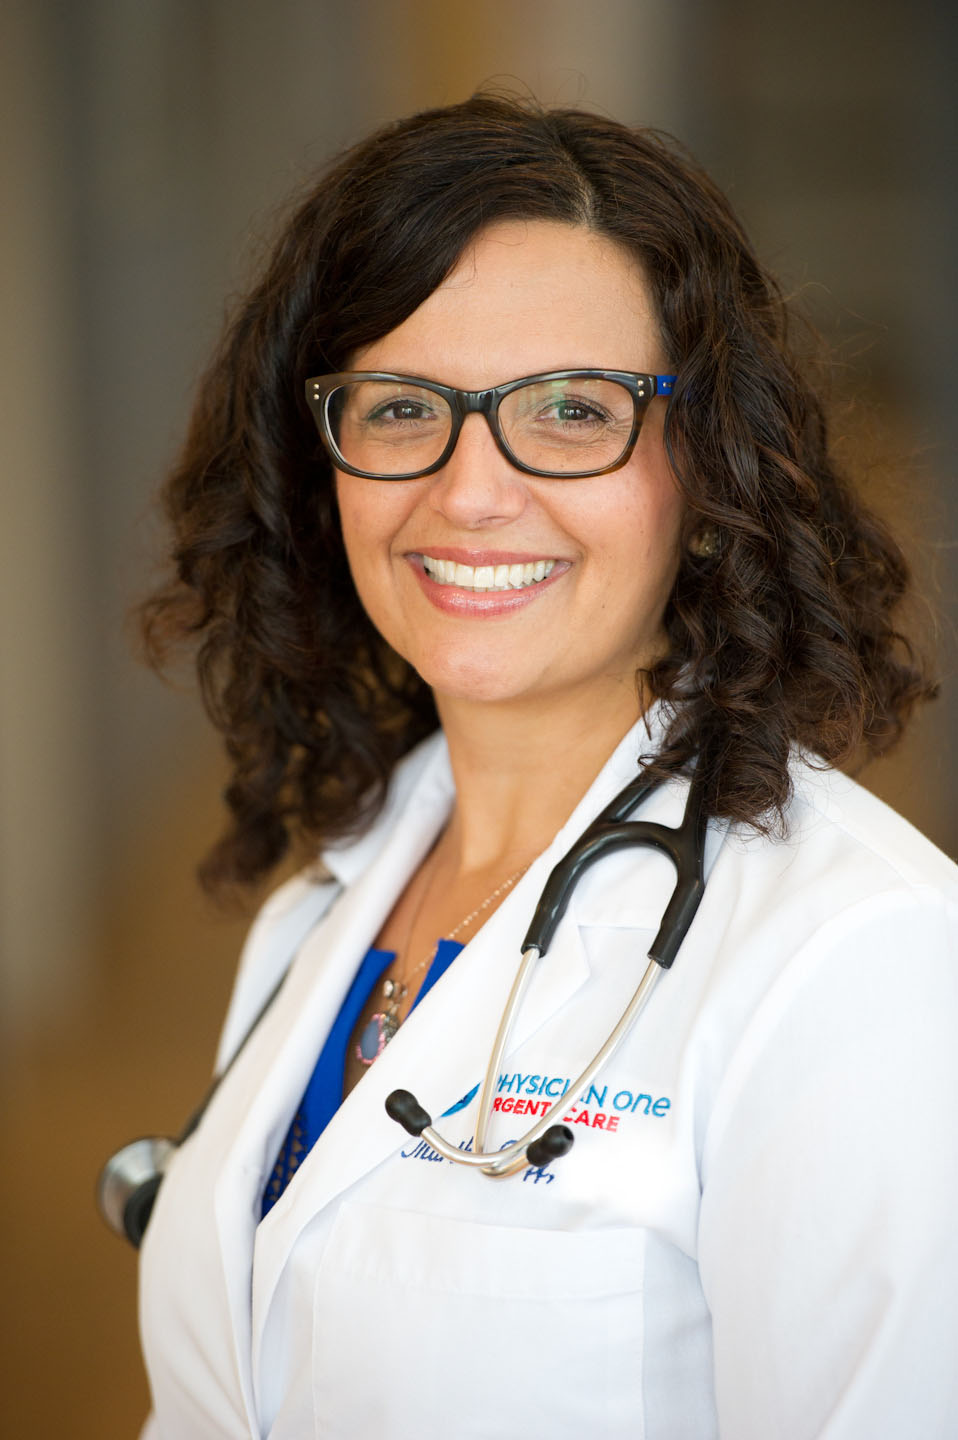 Dr. Jeannie Kenkare, PhysicianOne Urgent Care